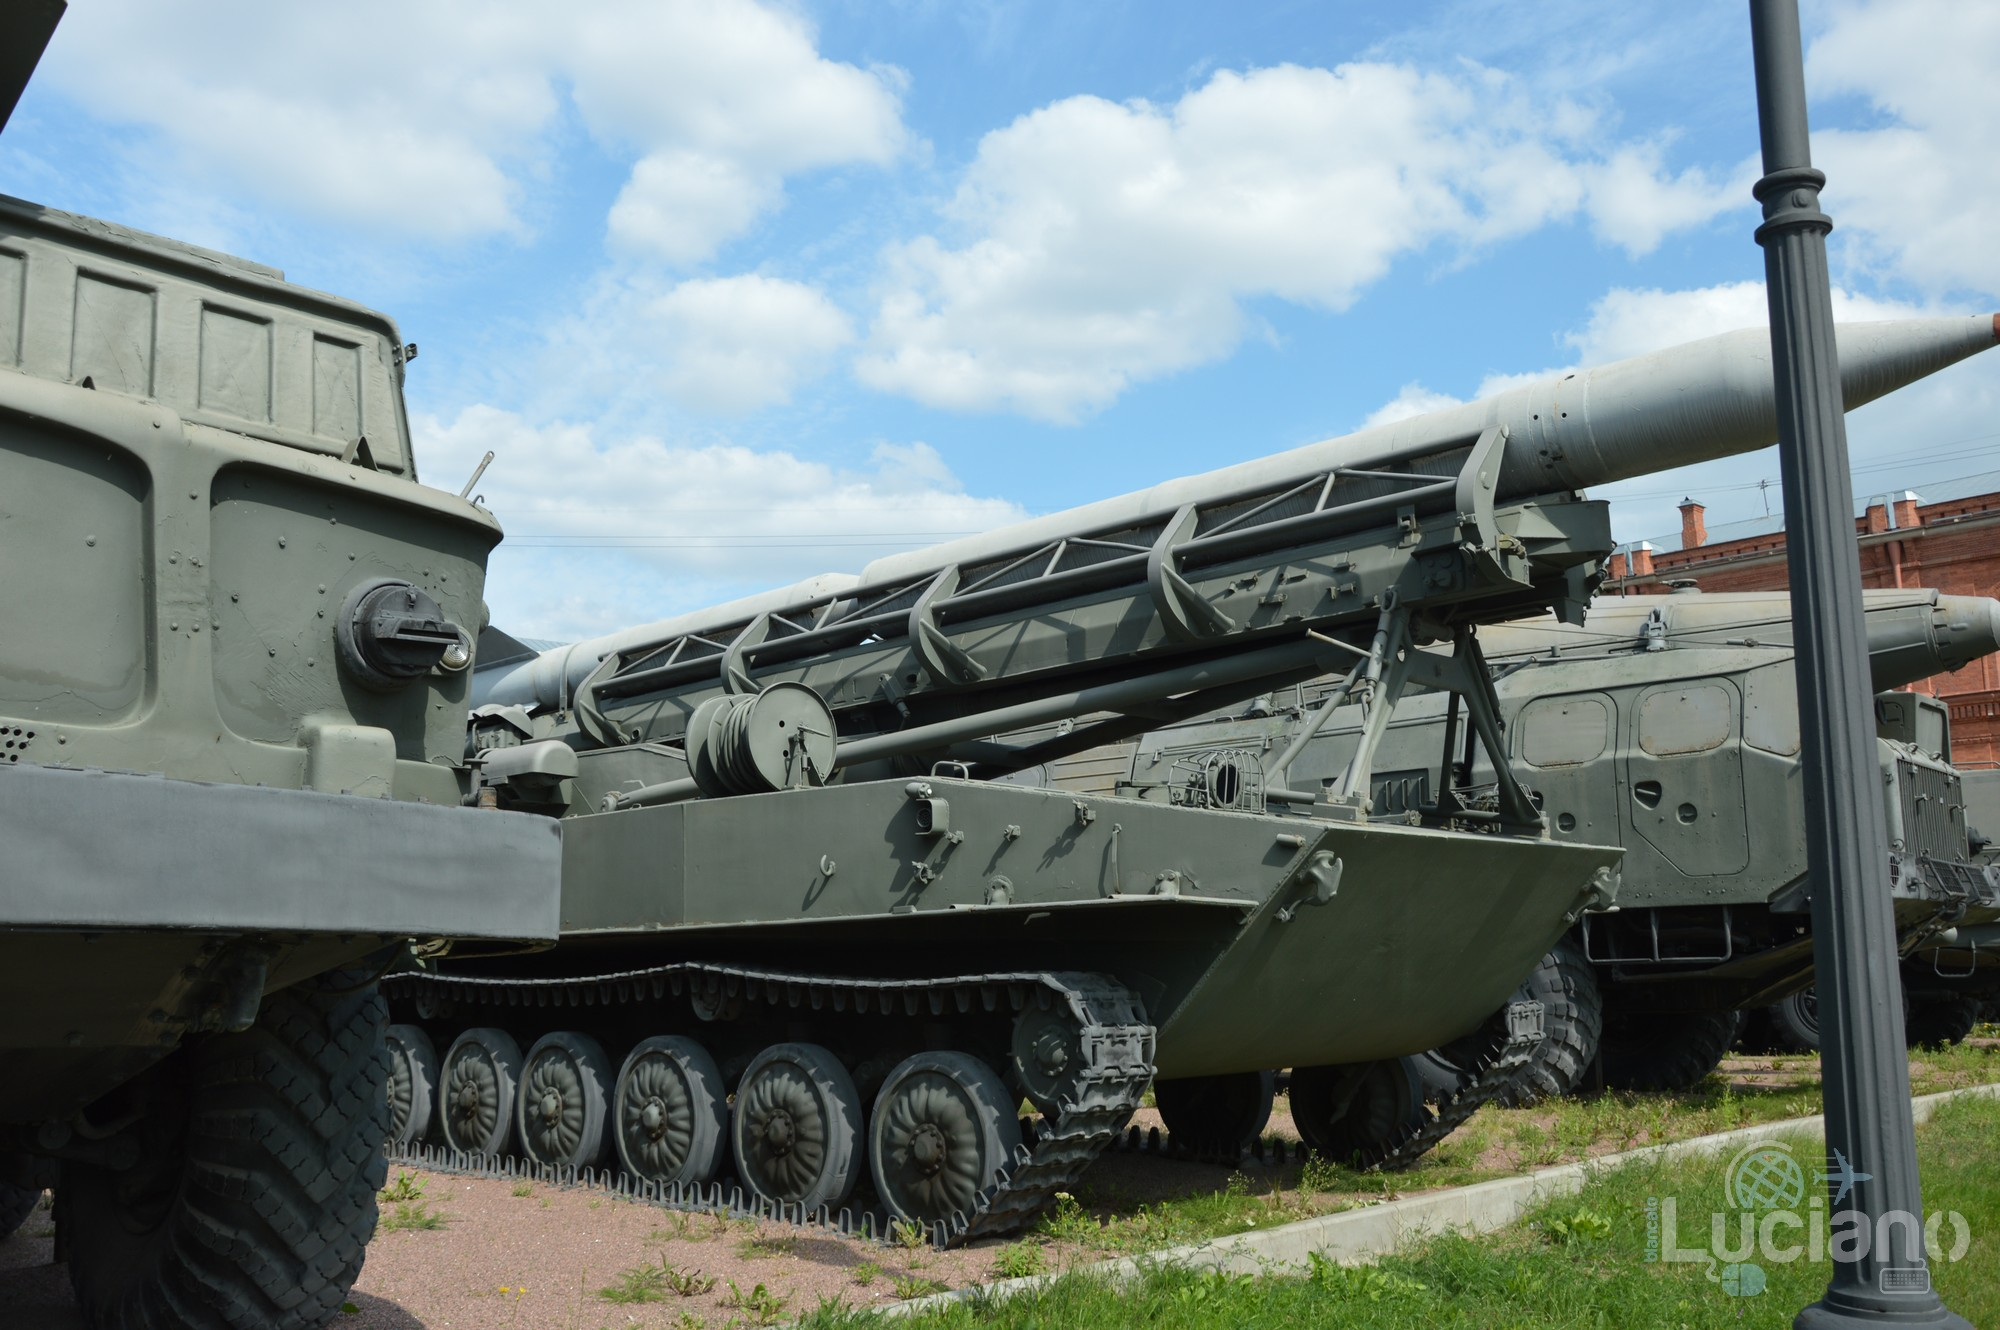 Military-Historical-Museum-of-Artillery-Engineer-and-Signal-Corps-St-Petersburg-Russia-Luciano-Blancato- (16)